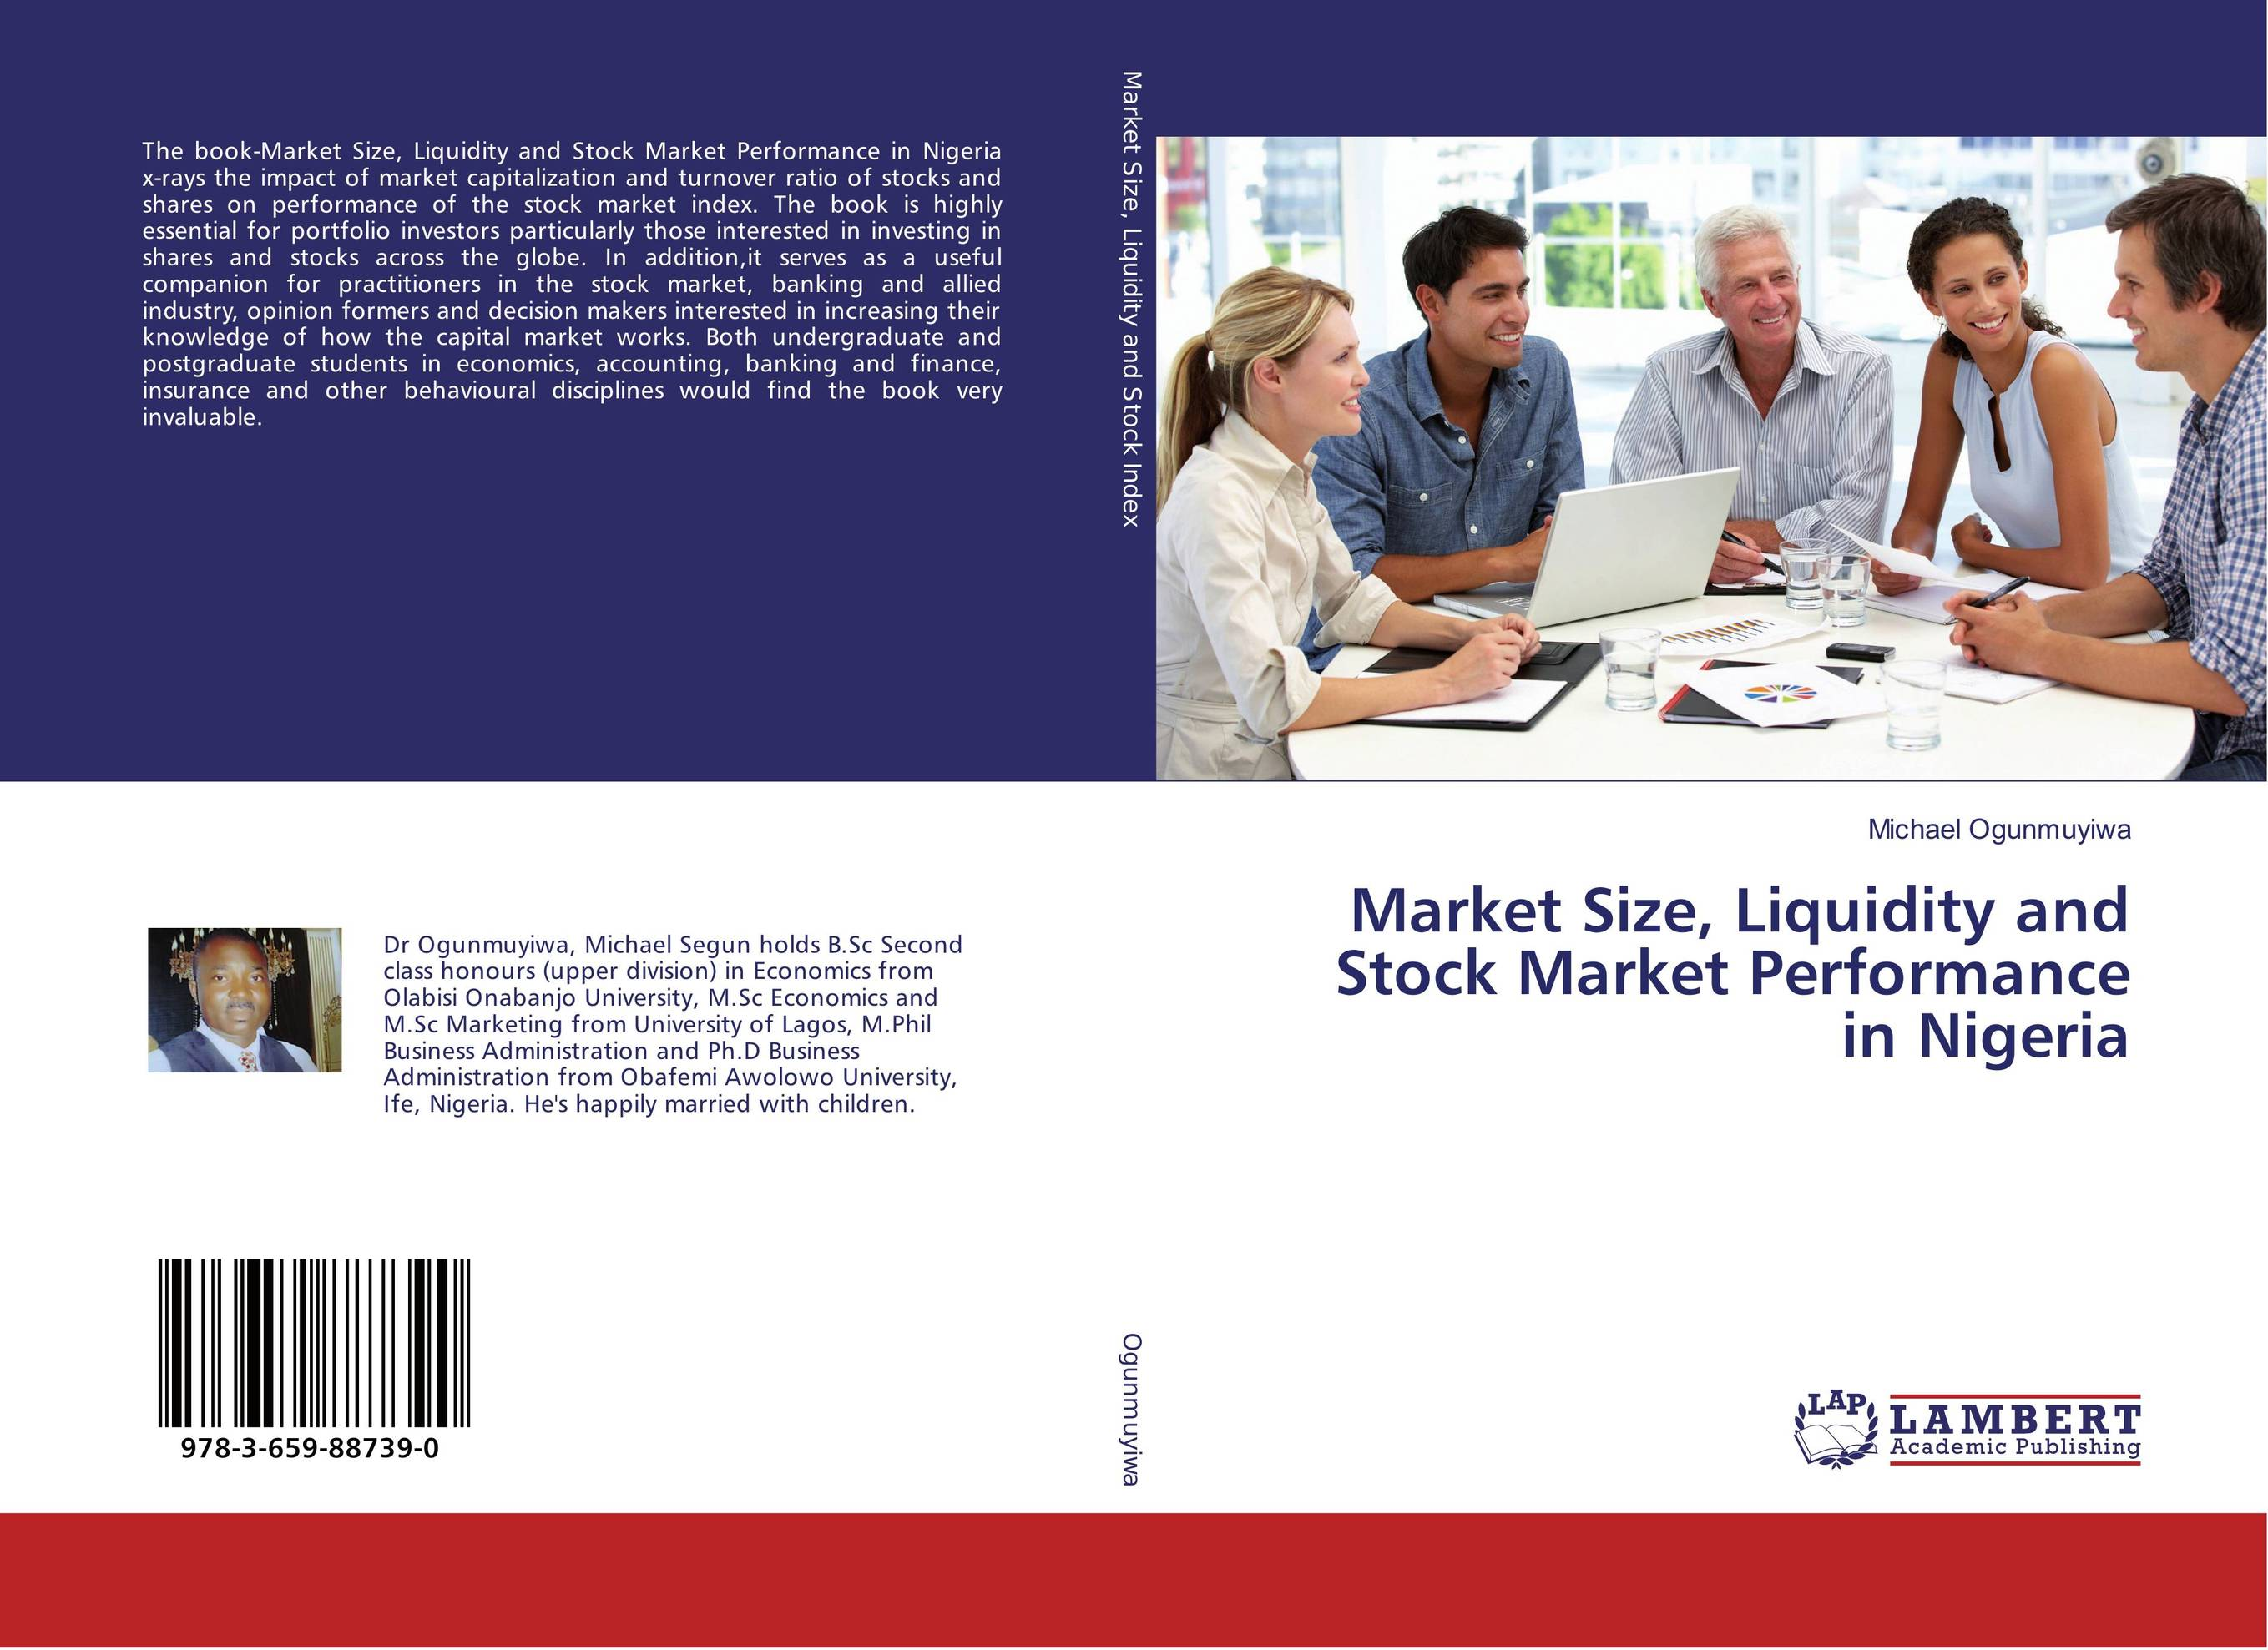 Market Size, Liquidity and Stock Market Performance in Nigeria kenneth rosen d investing in income properties the big six formula for achieving wealth in real estate